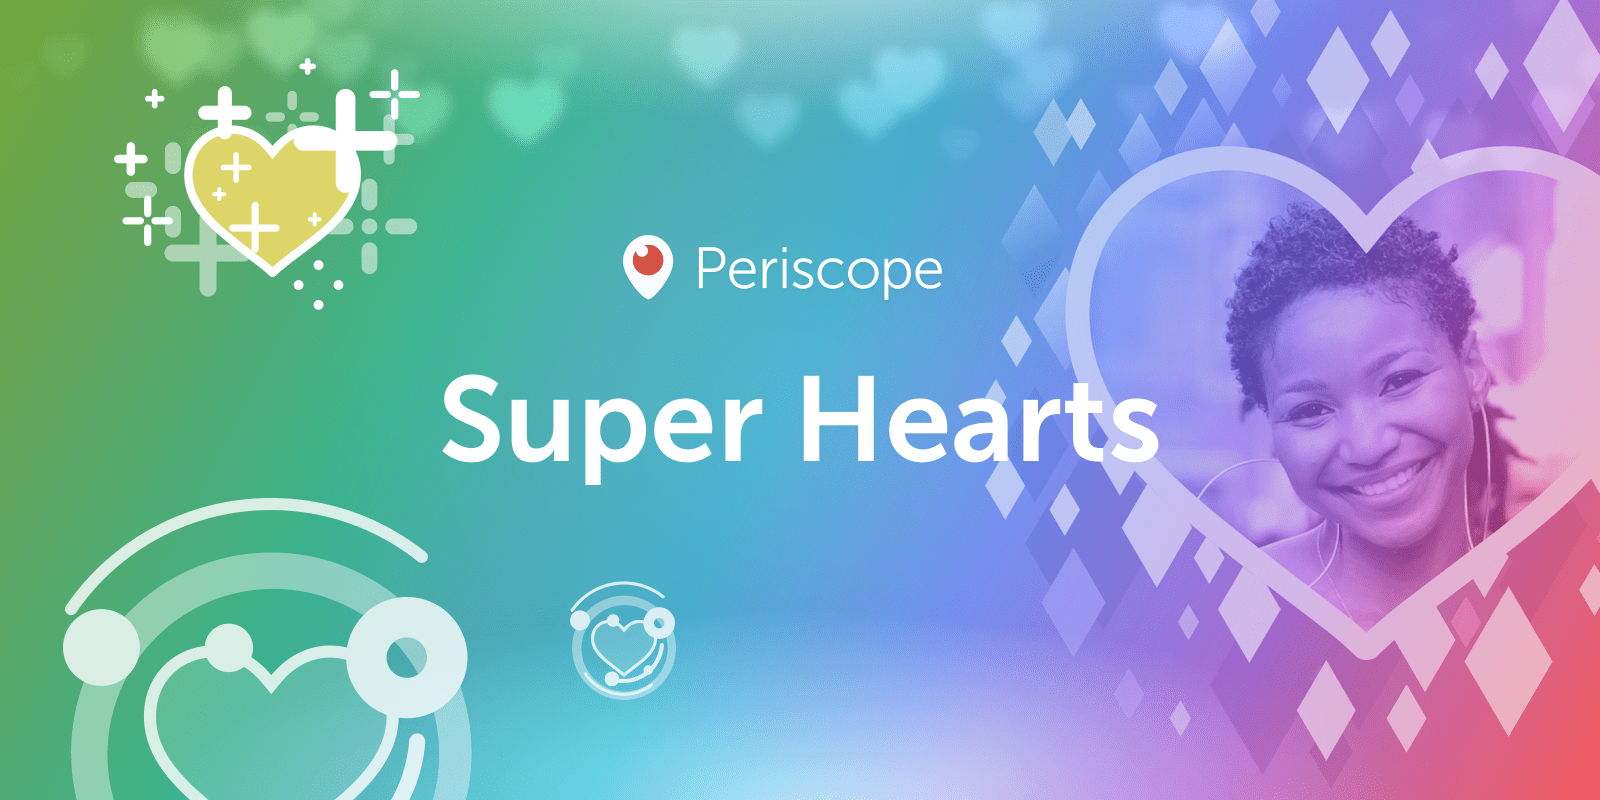 Periscope adds a confusing way to support your favorite